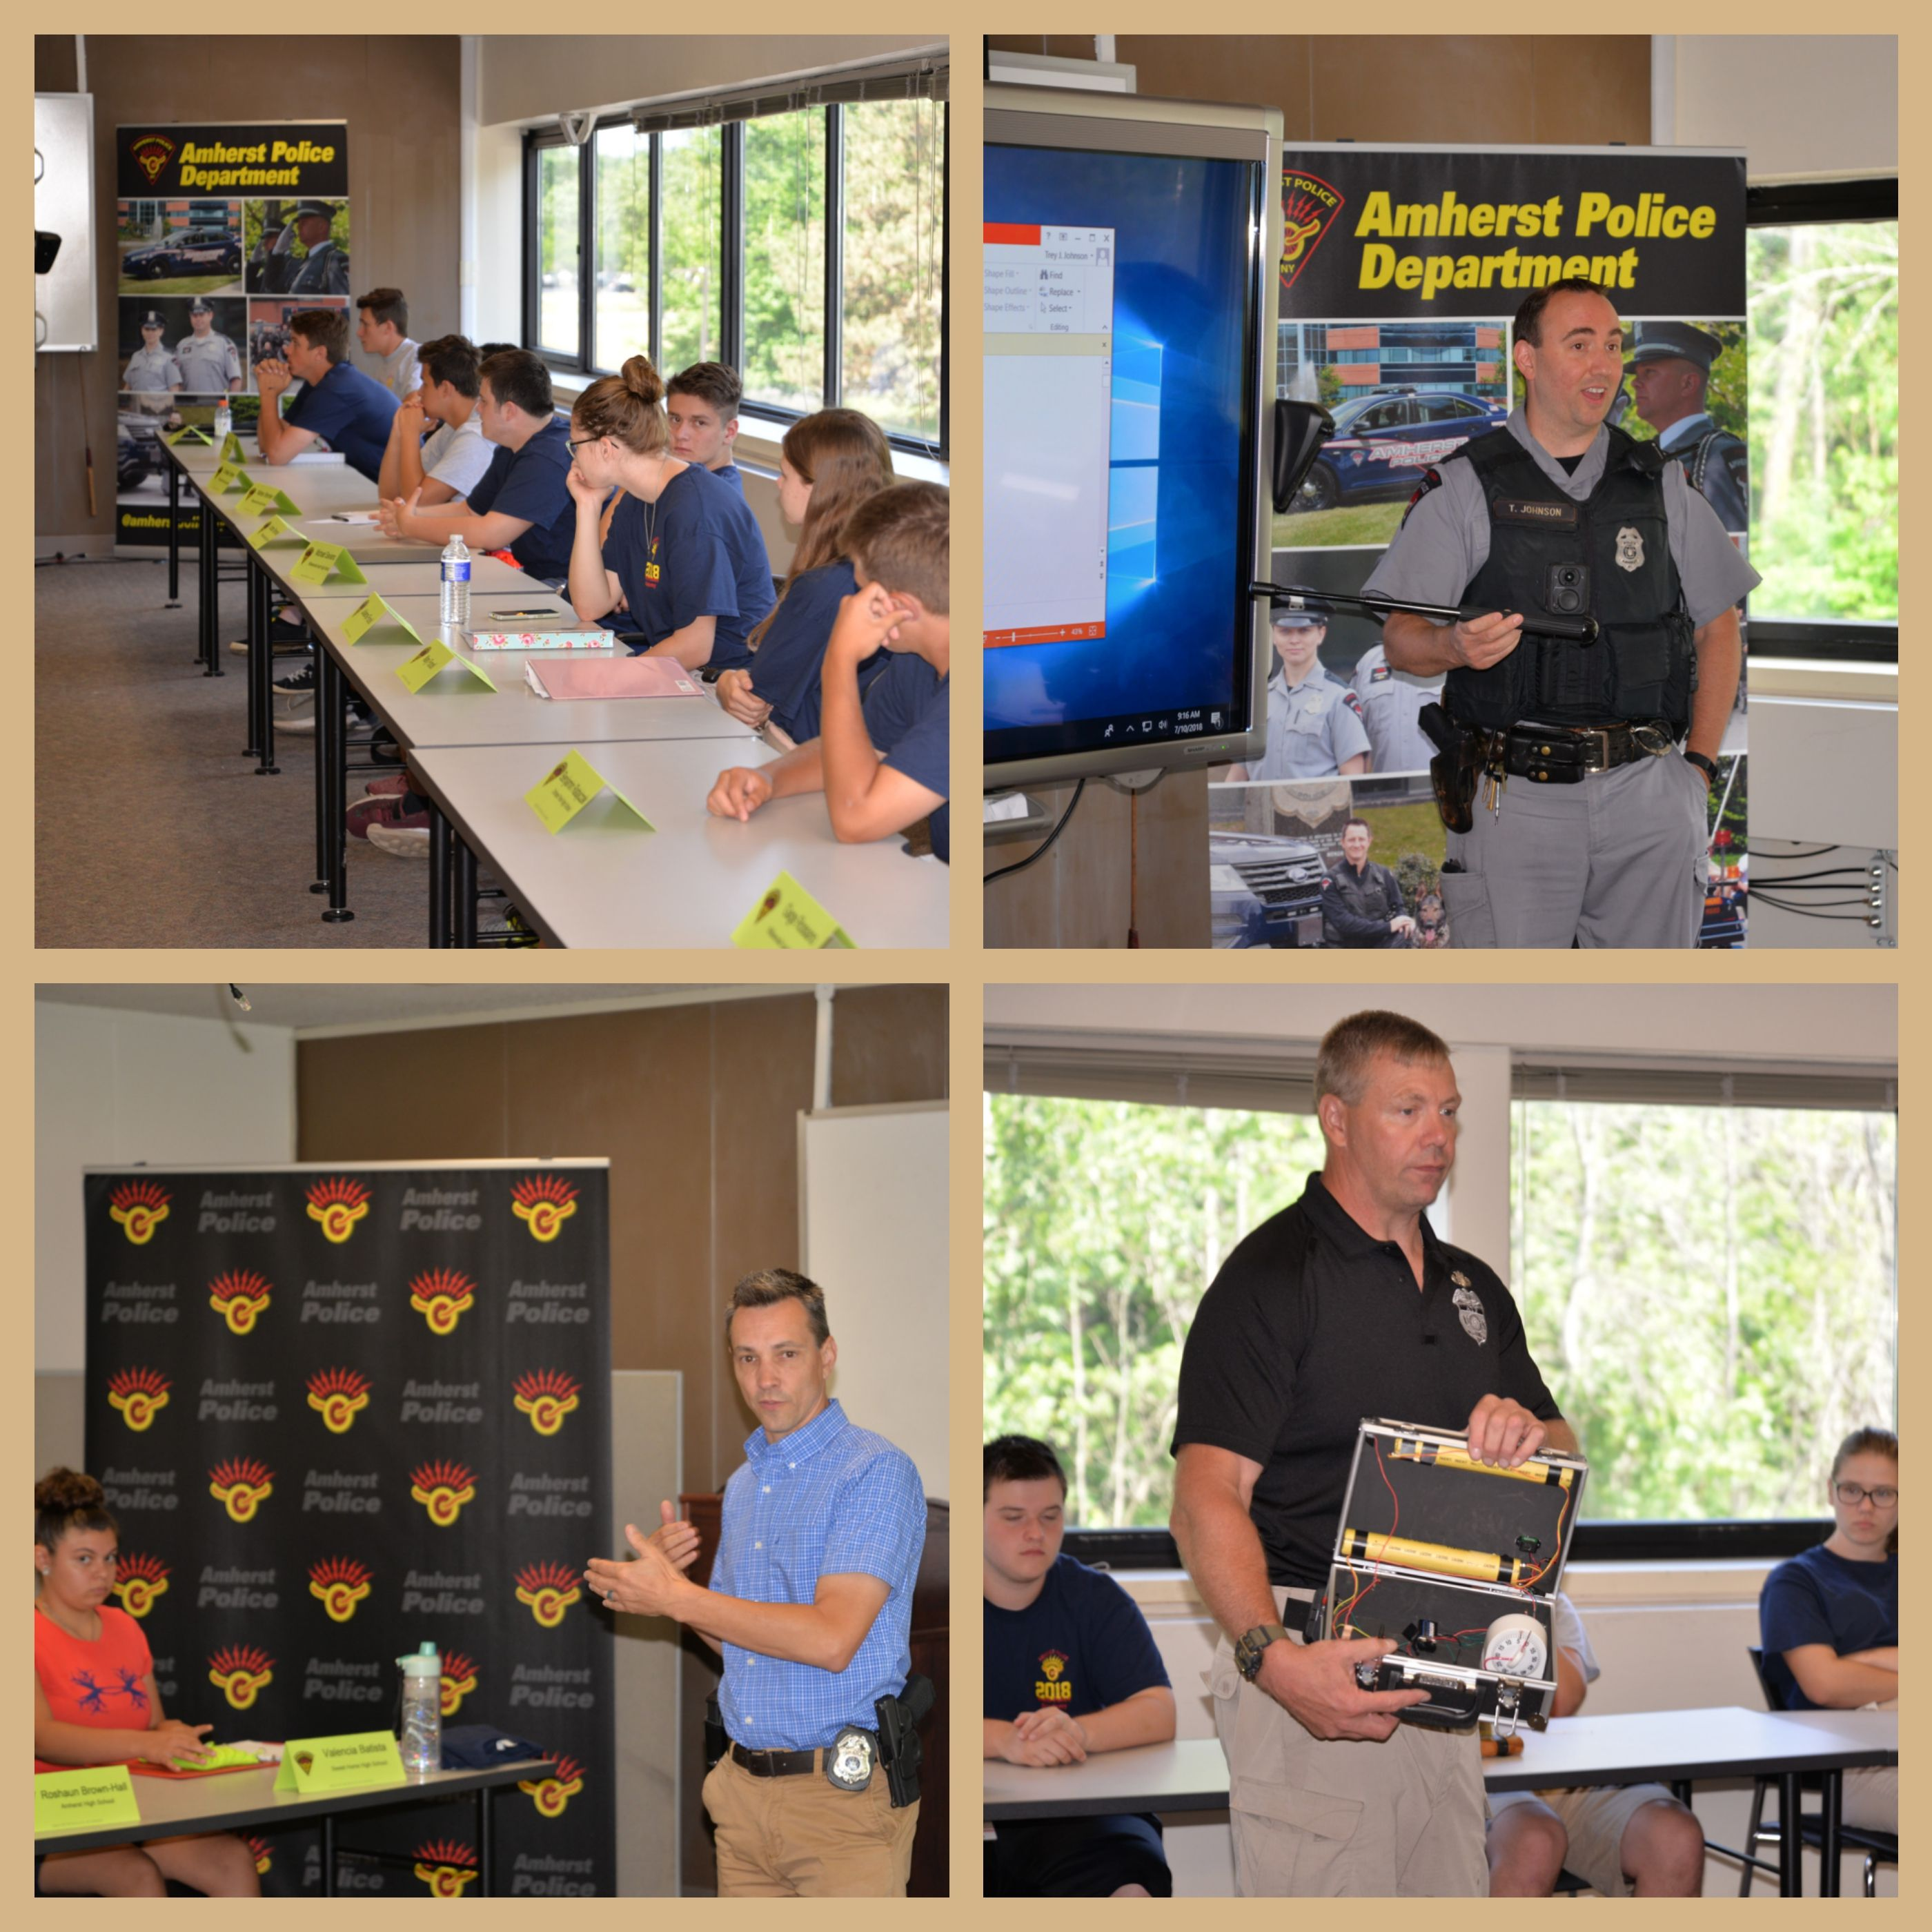 AMHERST, NY] -- WEEK 1 - Summer 2018 Amherst Police Department Youth